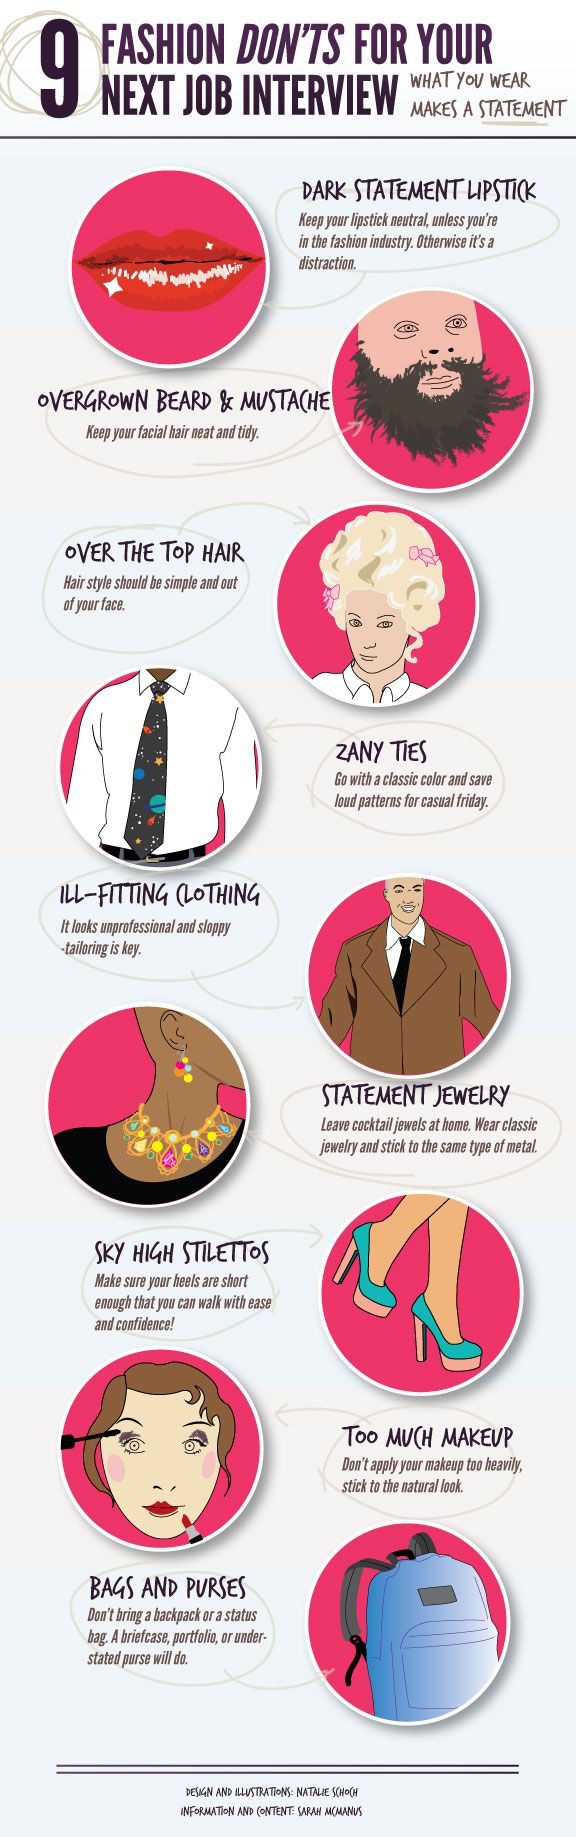 17 best images about job interview attire what not to wear on 17 best images about job interview attire what not to wear advertising interview and maxi dresses